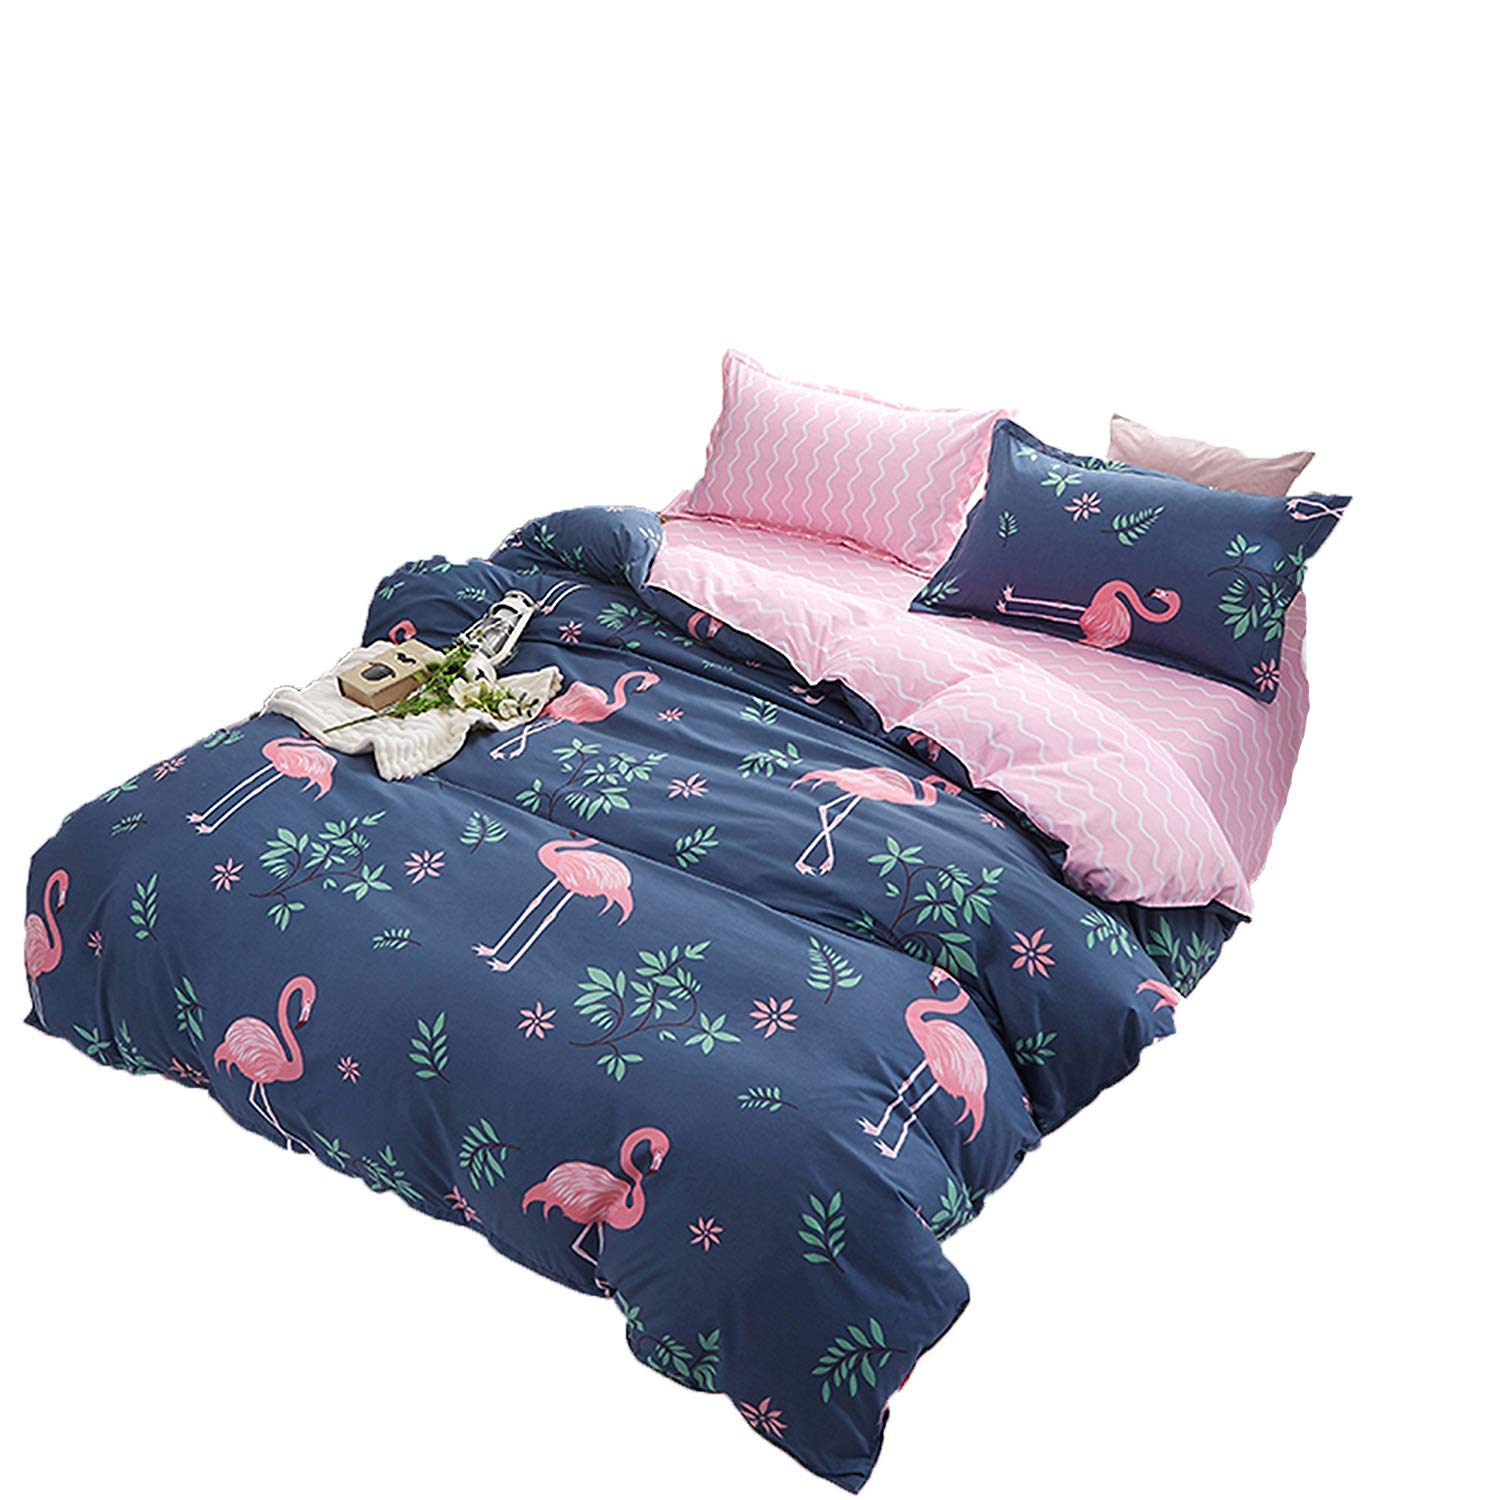 Kimko Kids Flamingo Bedding Set- Children Reversible Pink Flamingo Pattern & Dark Blue Cover -4Pcs -1 Duvet Cover Set + 1 Bed Sheet + 2 Pillowcases (# Flamingo, Full)